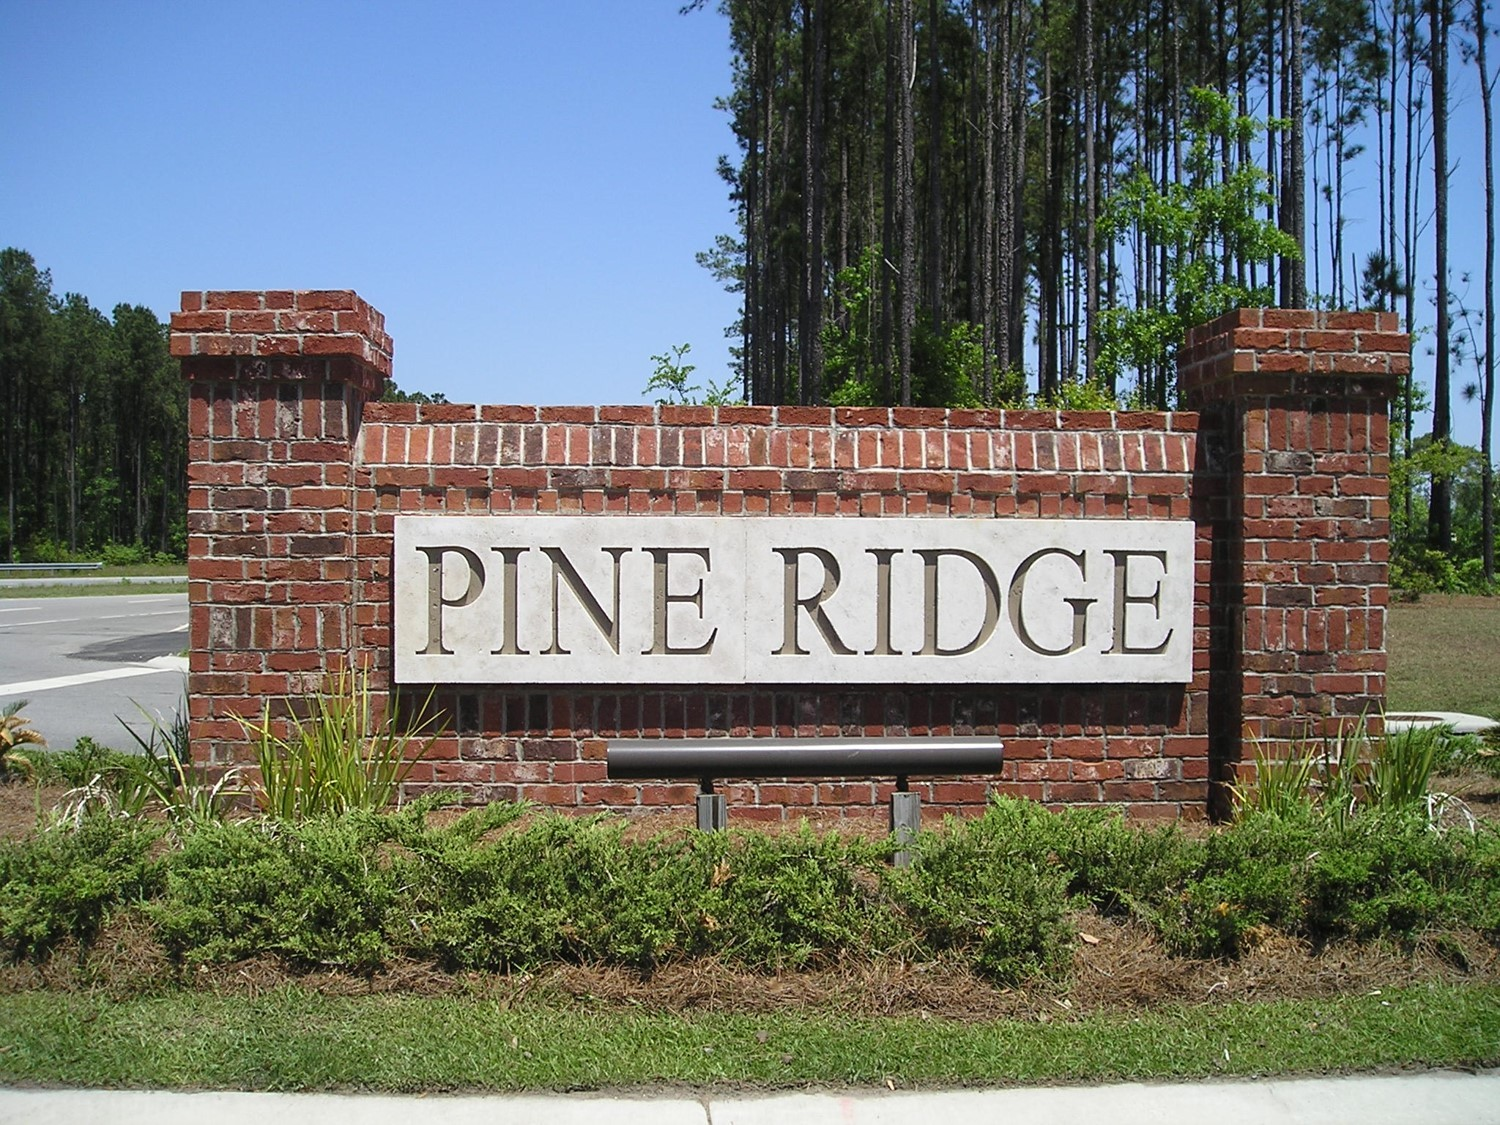 Pine Ridge entry sign